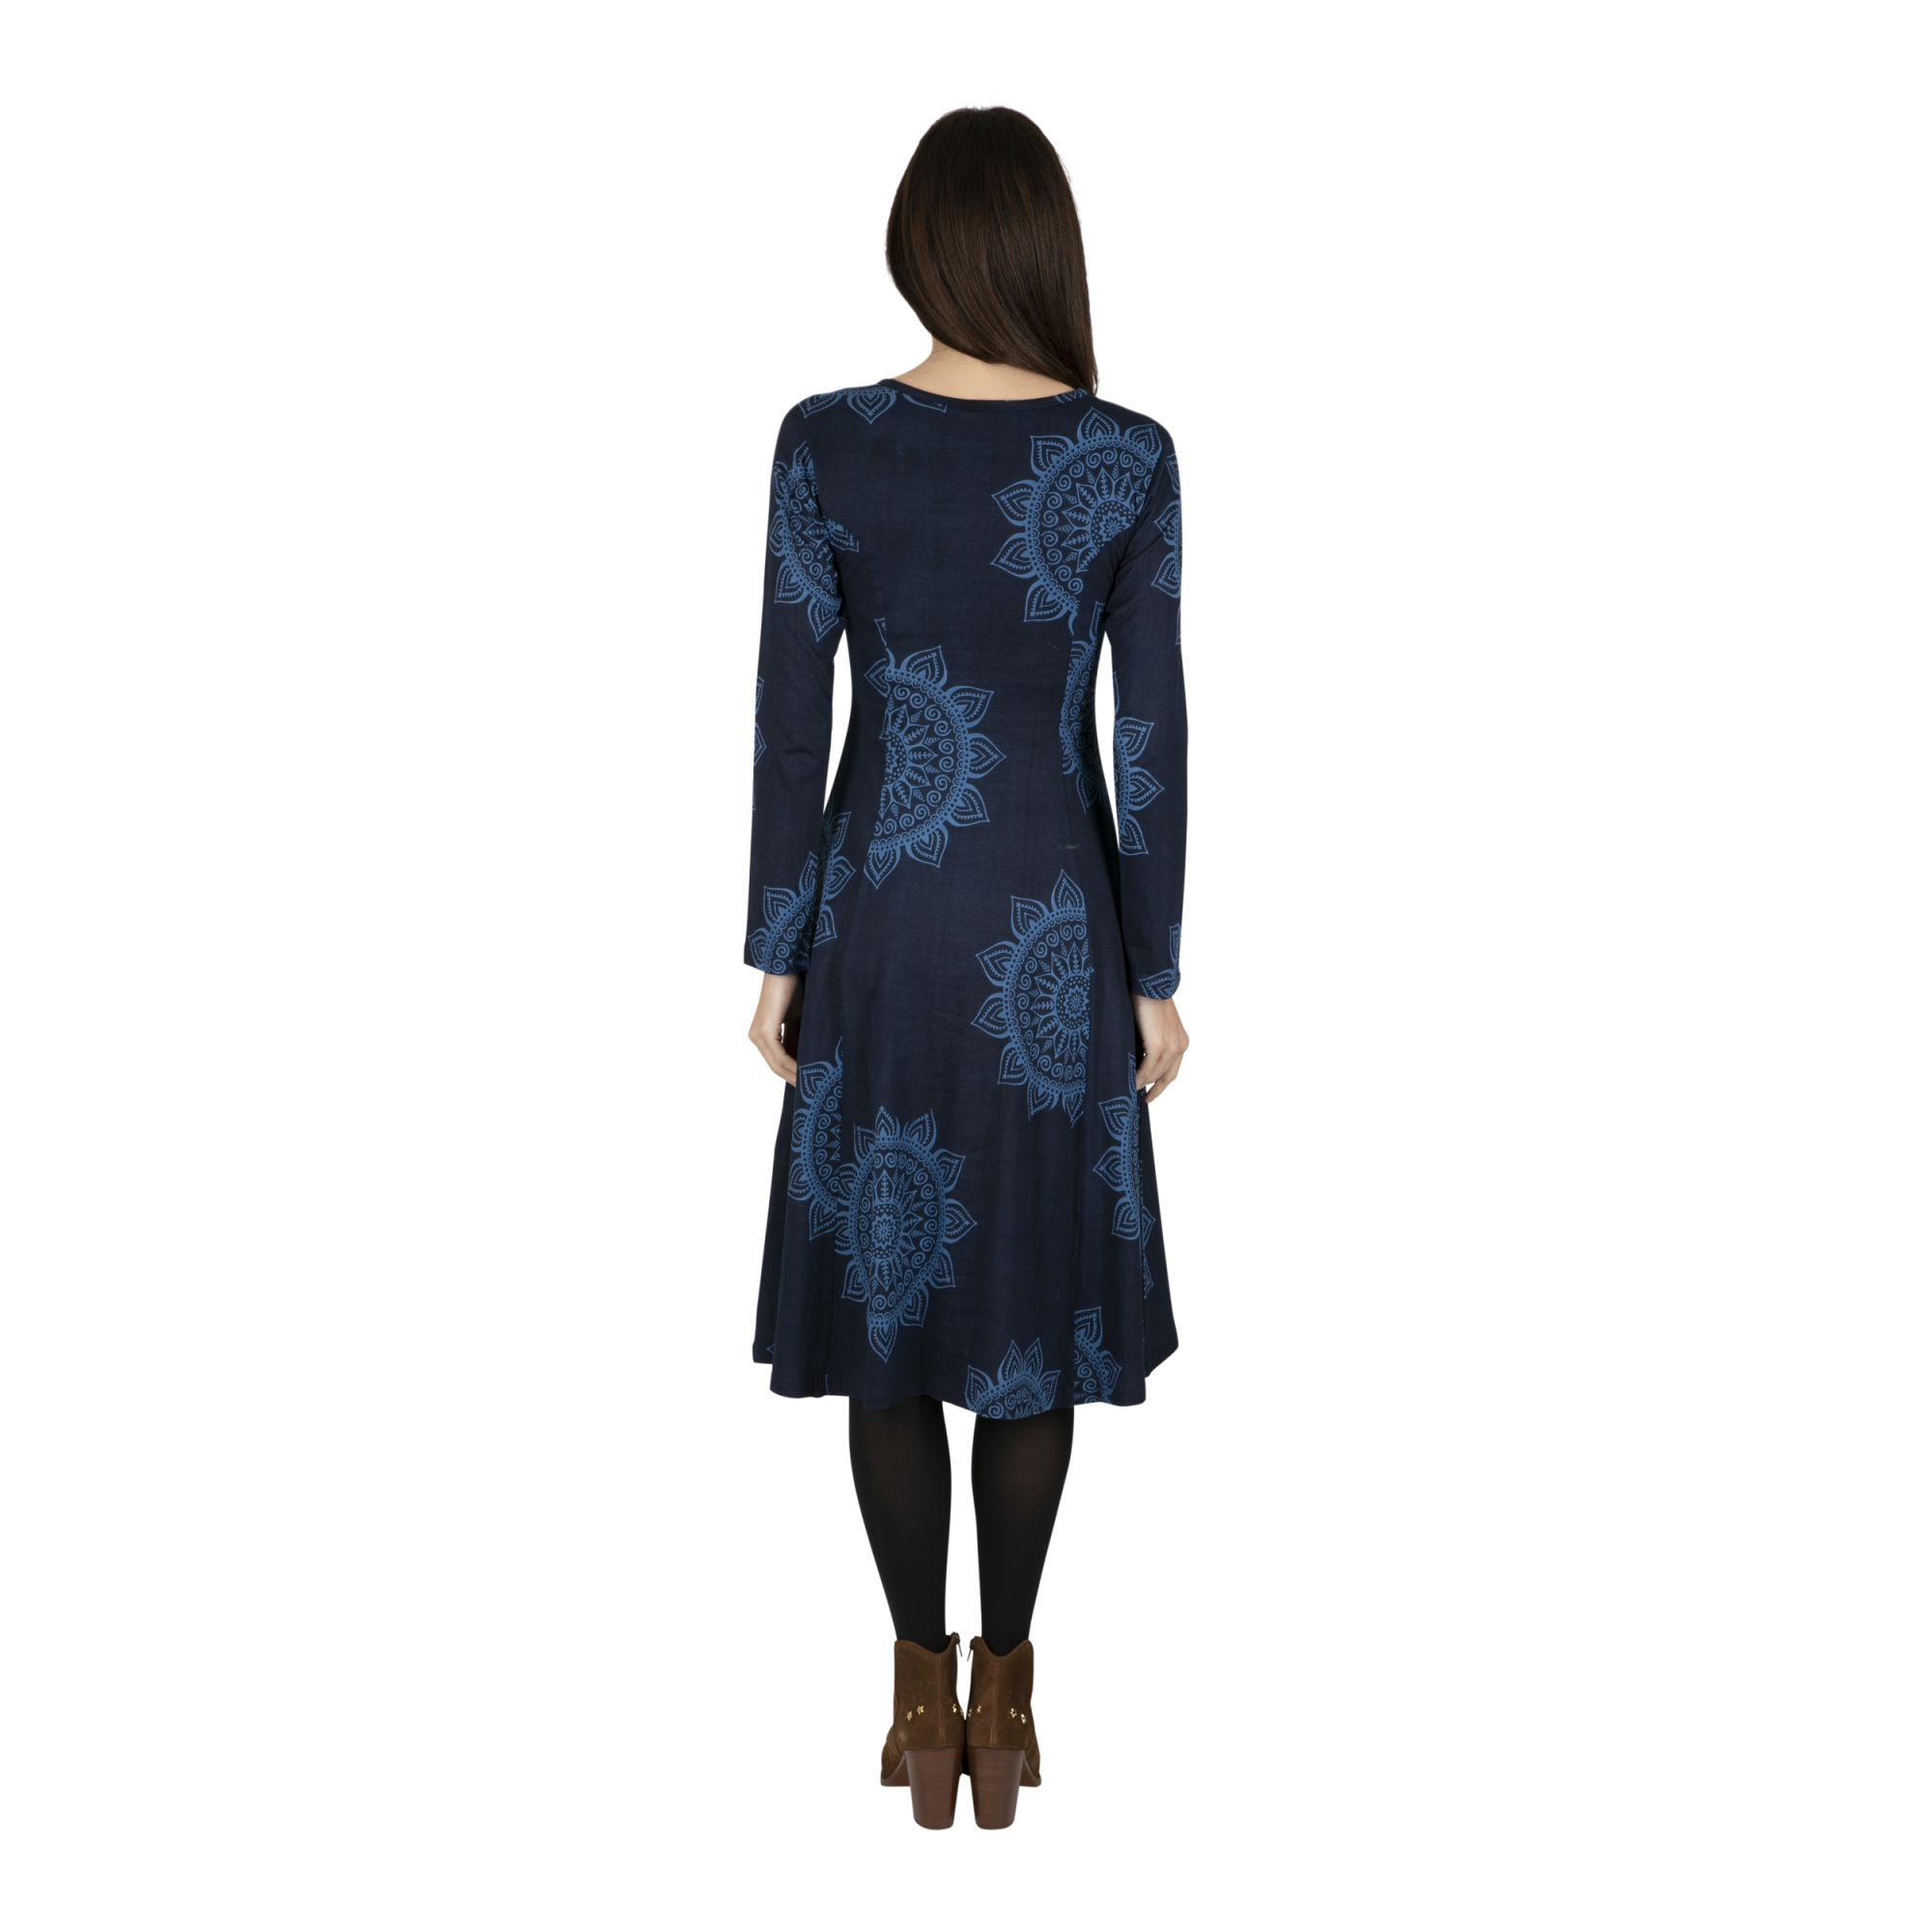 Robe bohème collection hiver à imprimé mandala Virginia